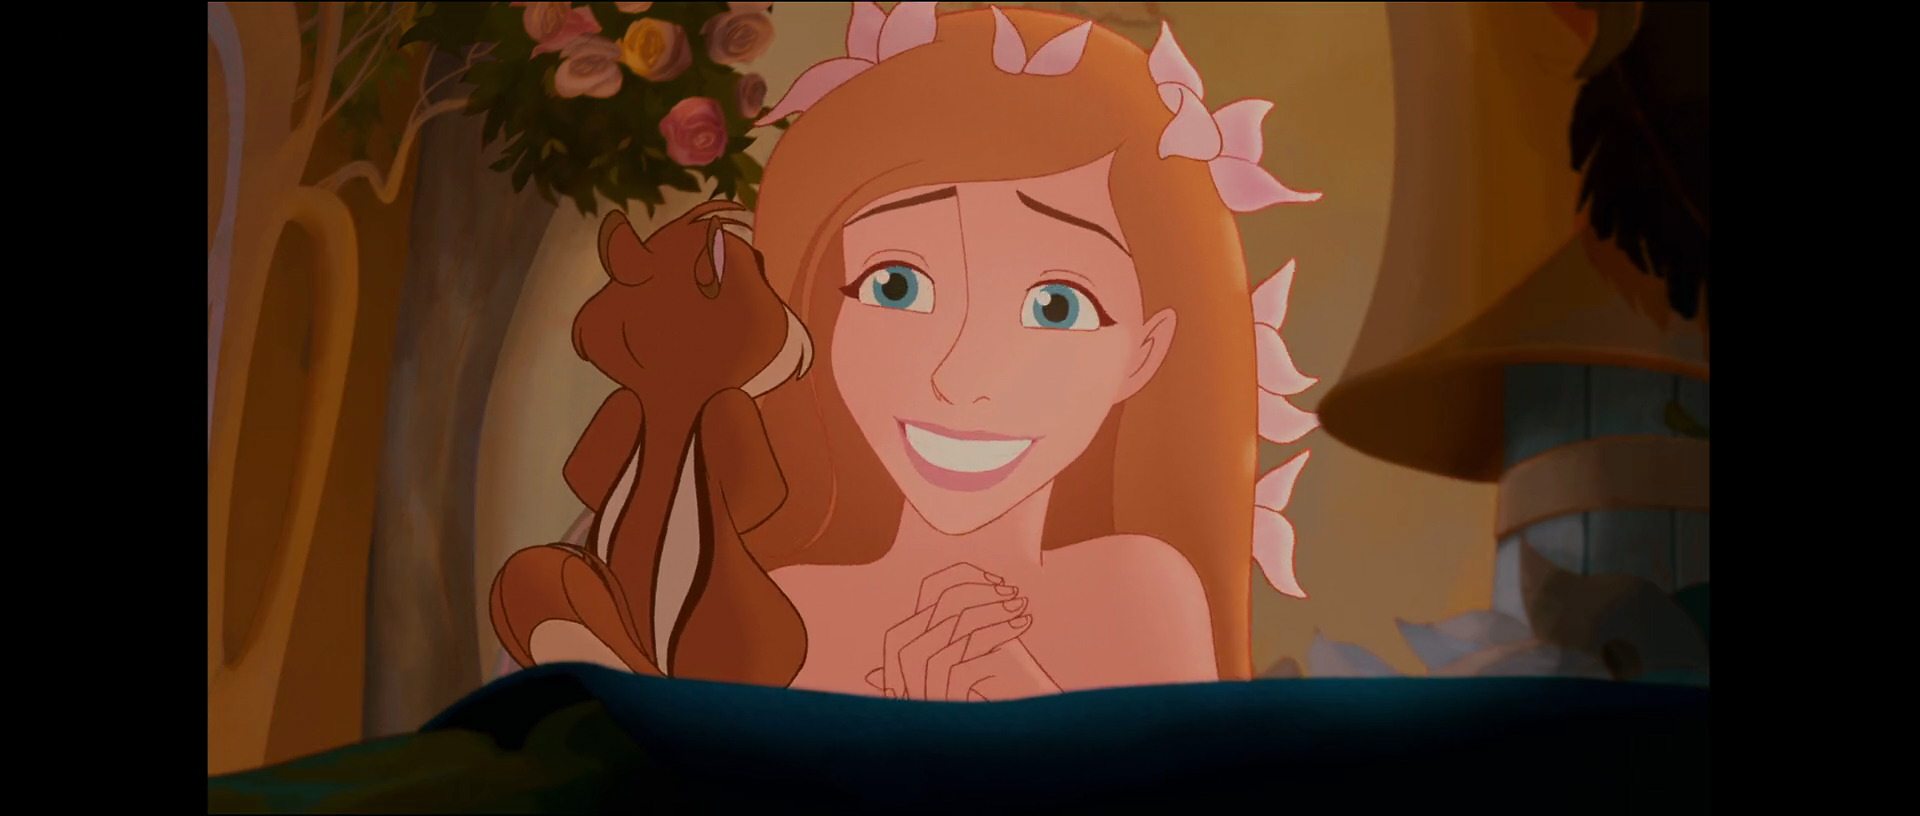 image enchanteddisneyscreencapscom198jpg disney